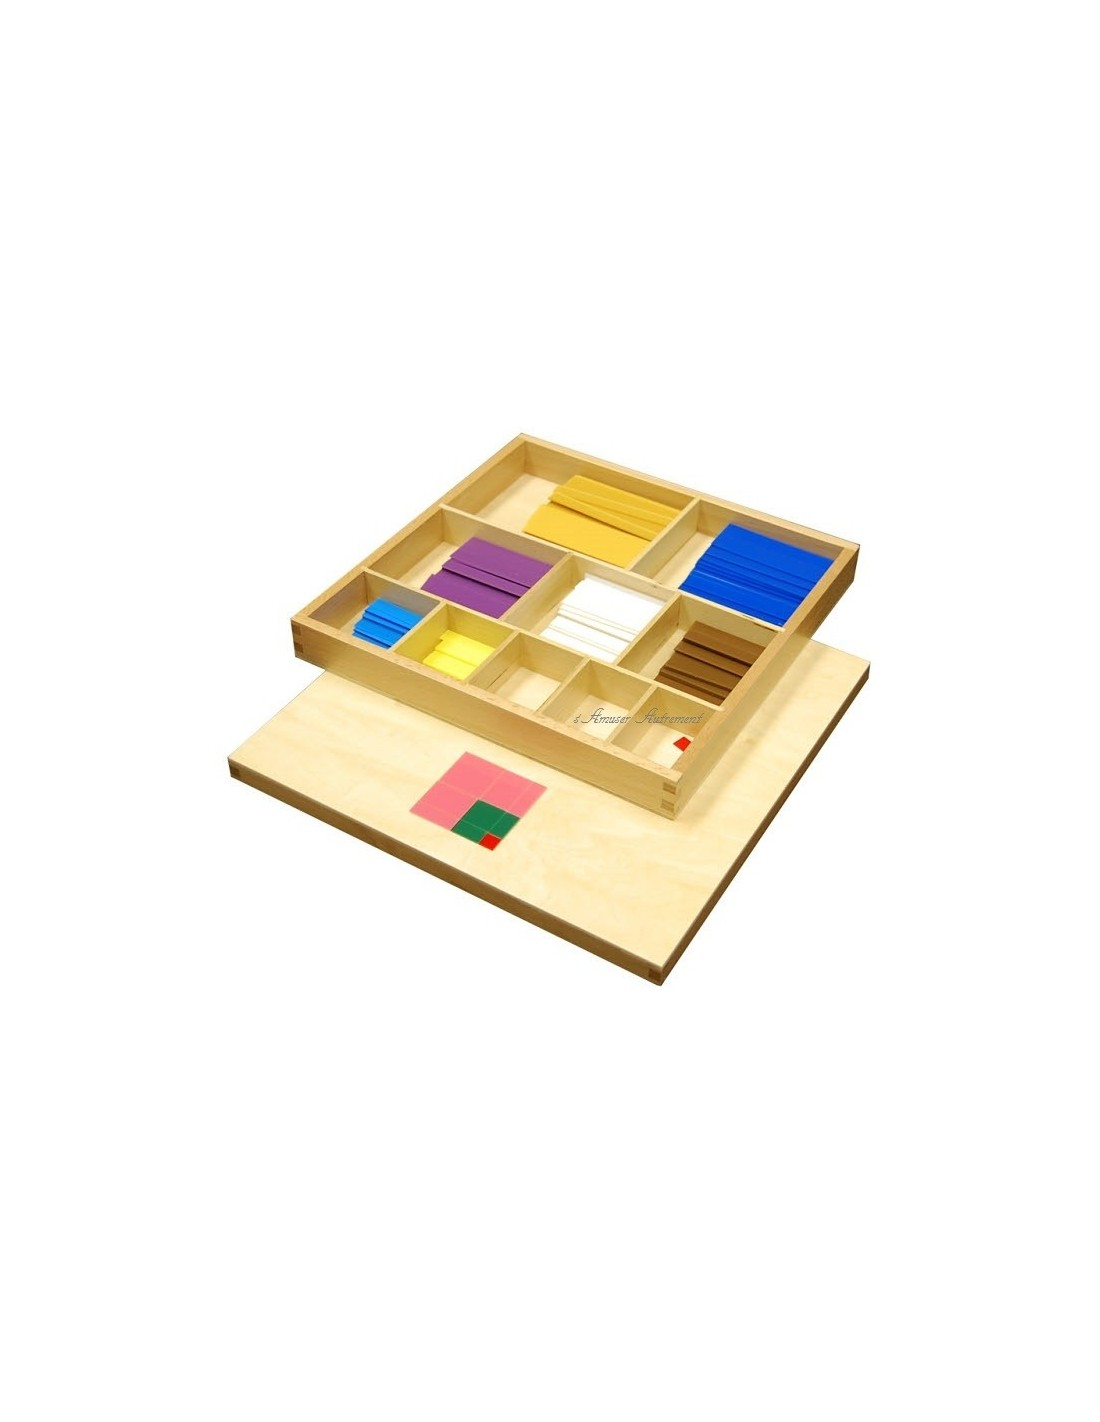 Table de pythagore sensorielle montessori s 39 amuser autrement - Table de pythagore montessori ...